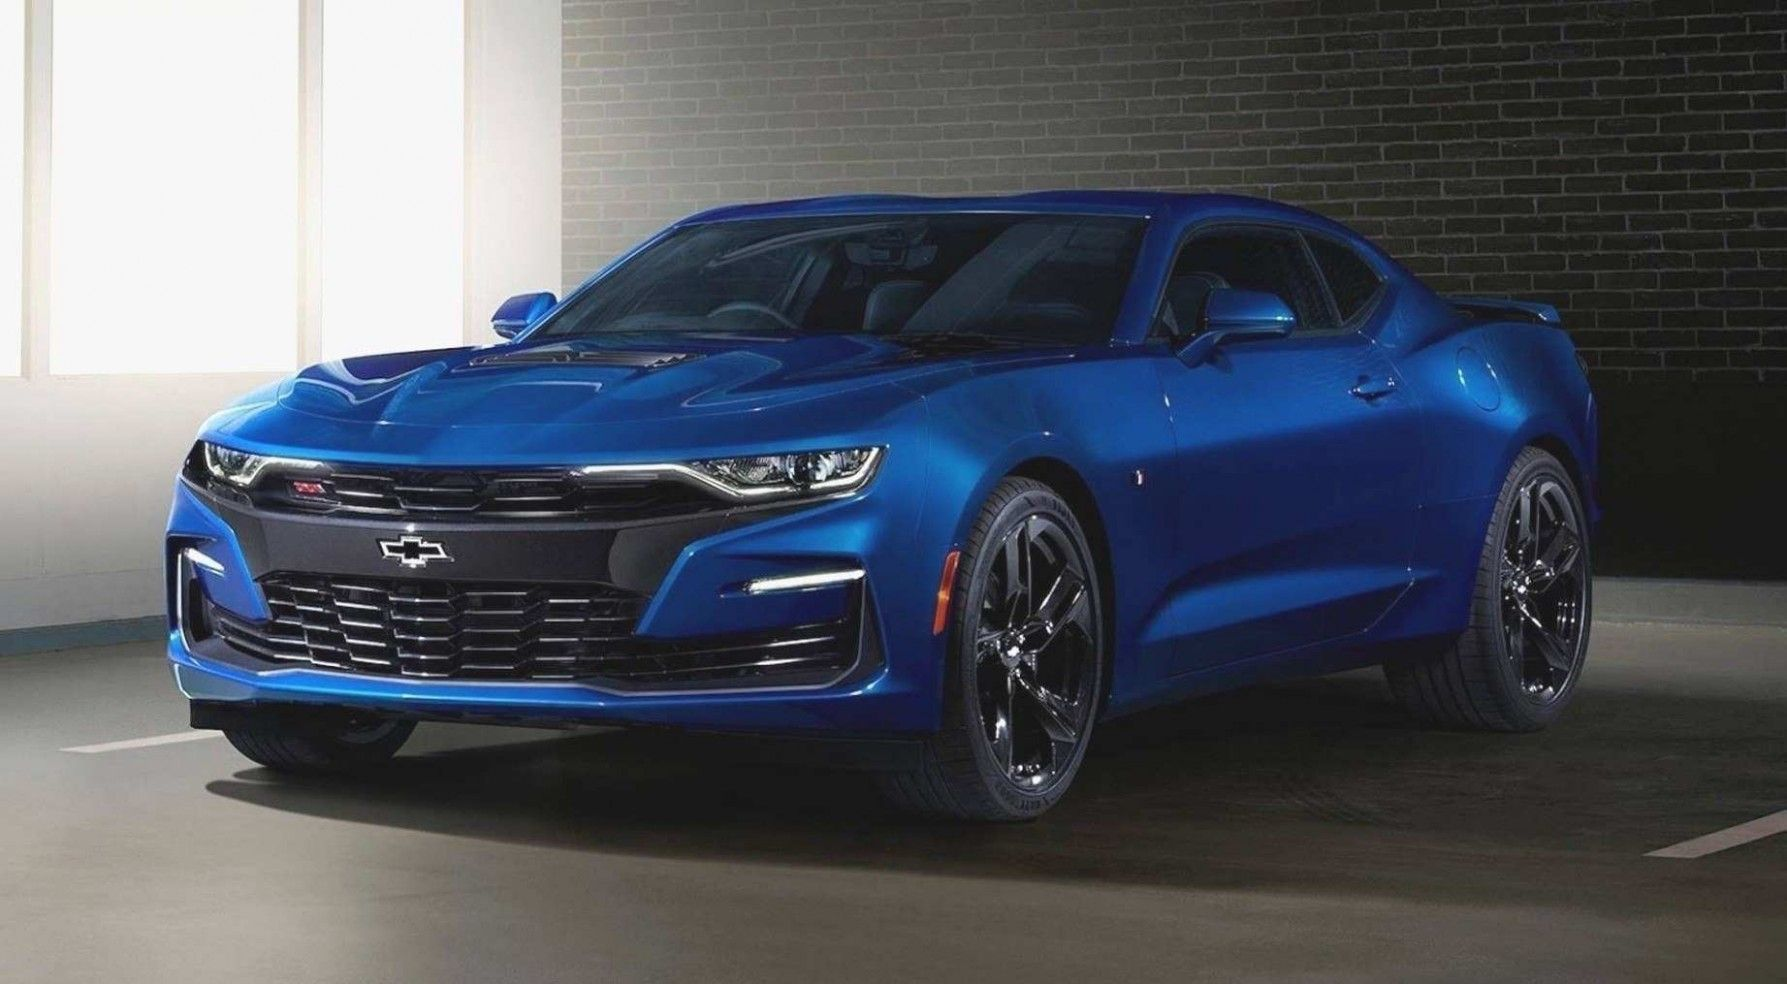 2020 Chevy Chevelle Configurations